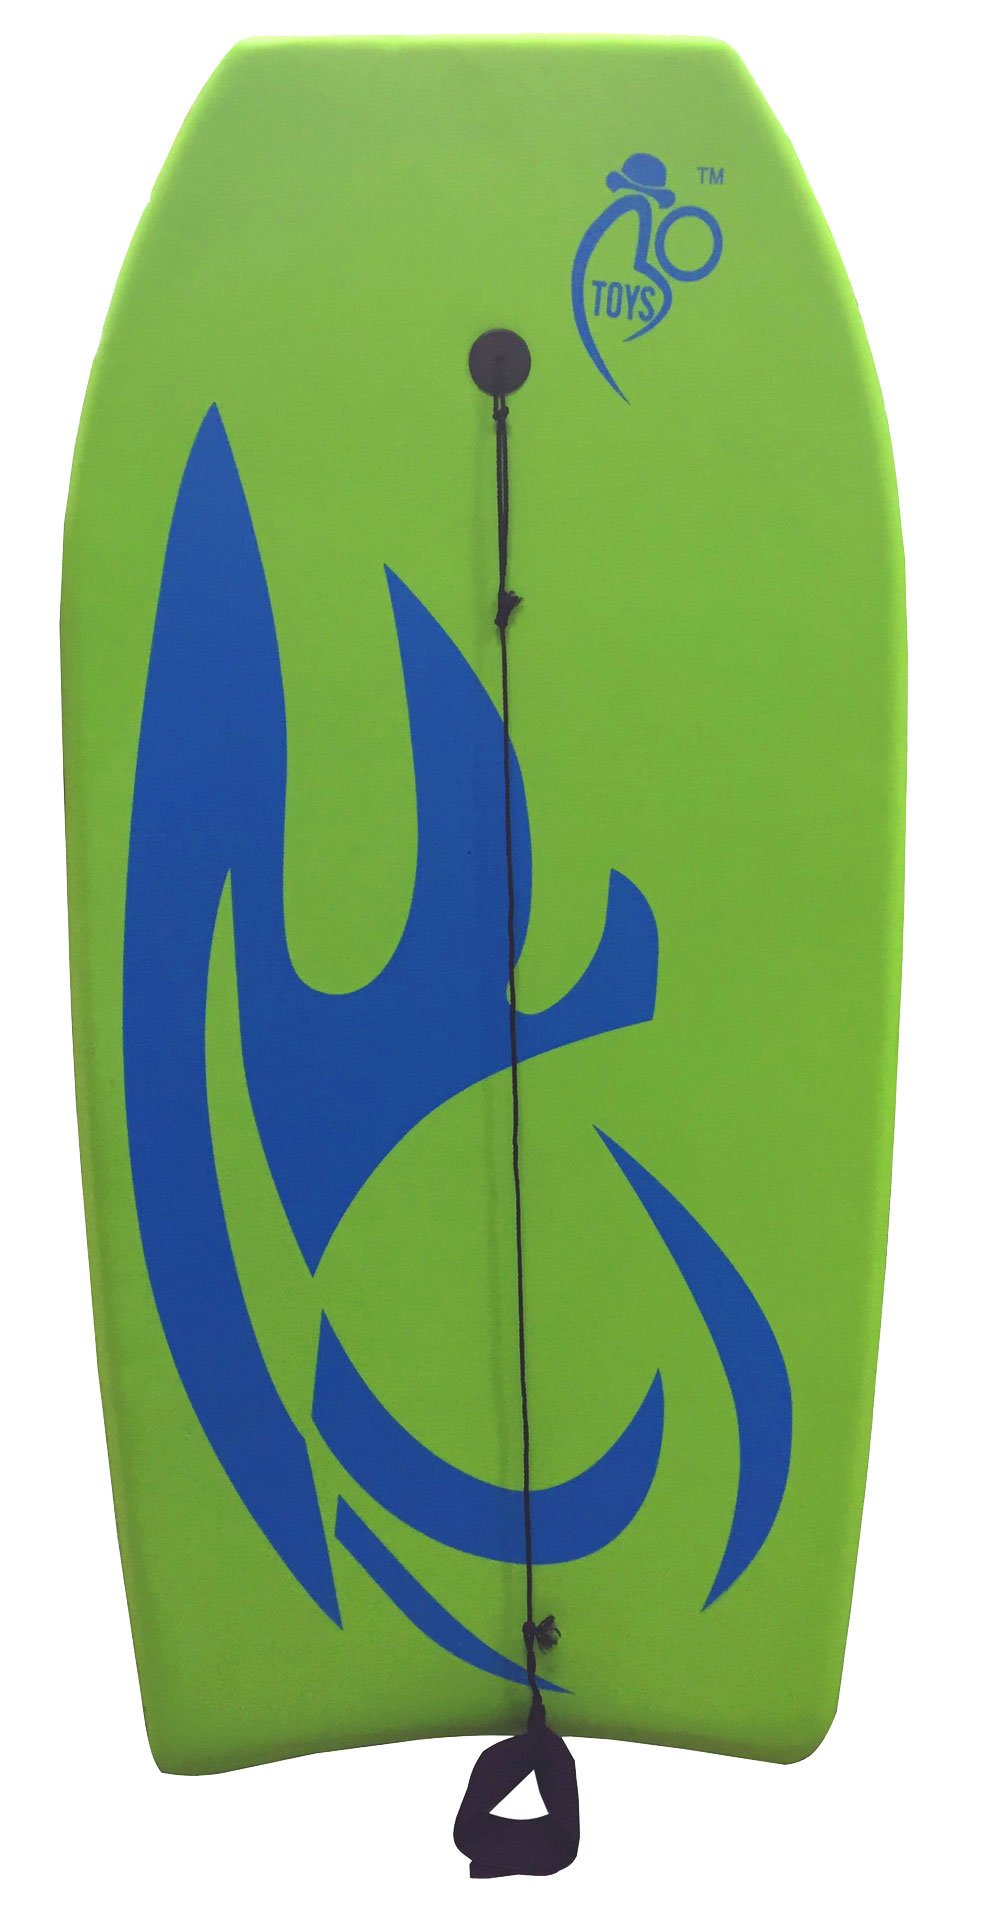 Bo-Toys Body Board Lightweight with EPS Core (Green, 41-INCH) by Bo-Toys